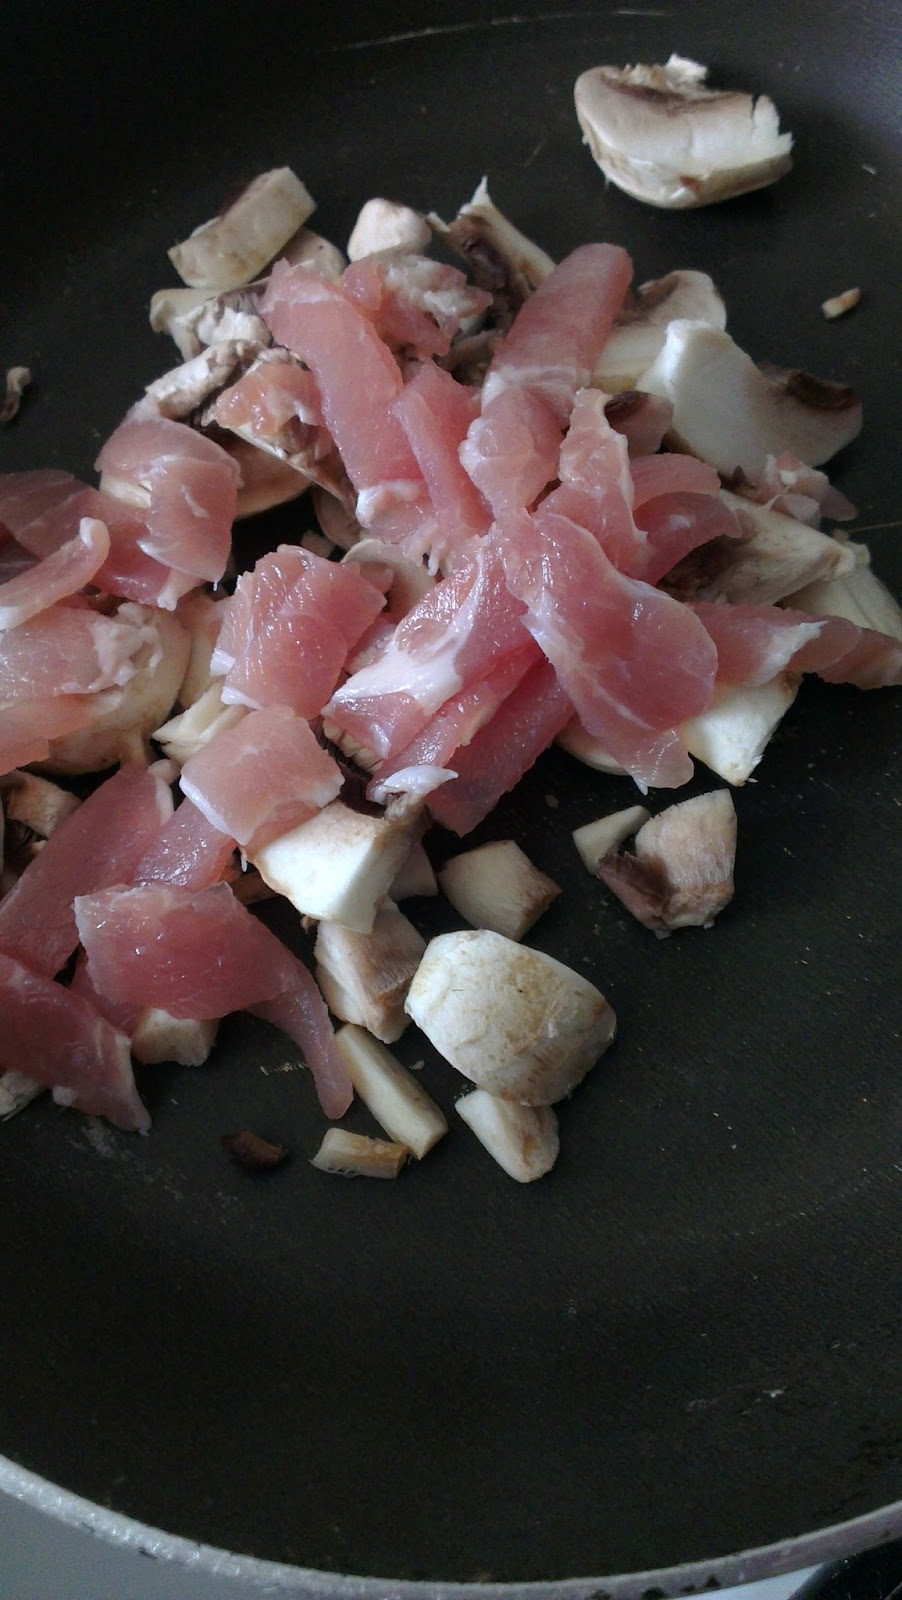 Chopped and diced mushrooms and bacon